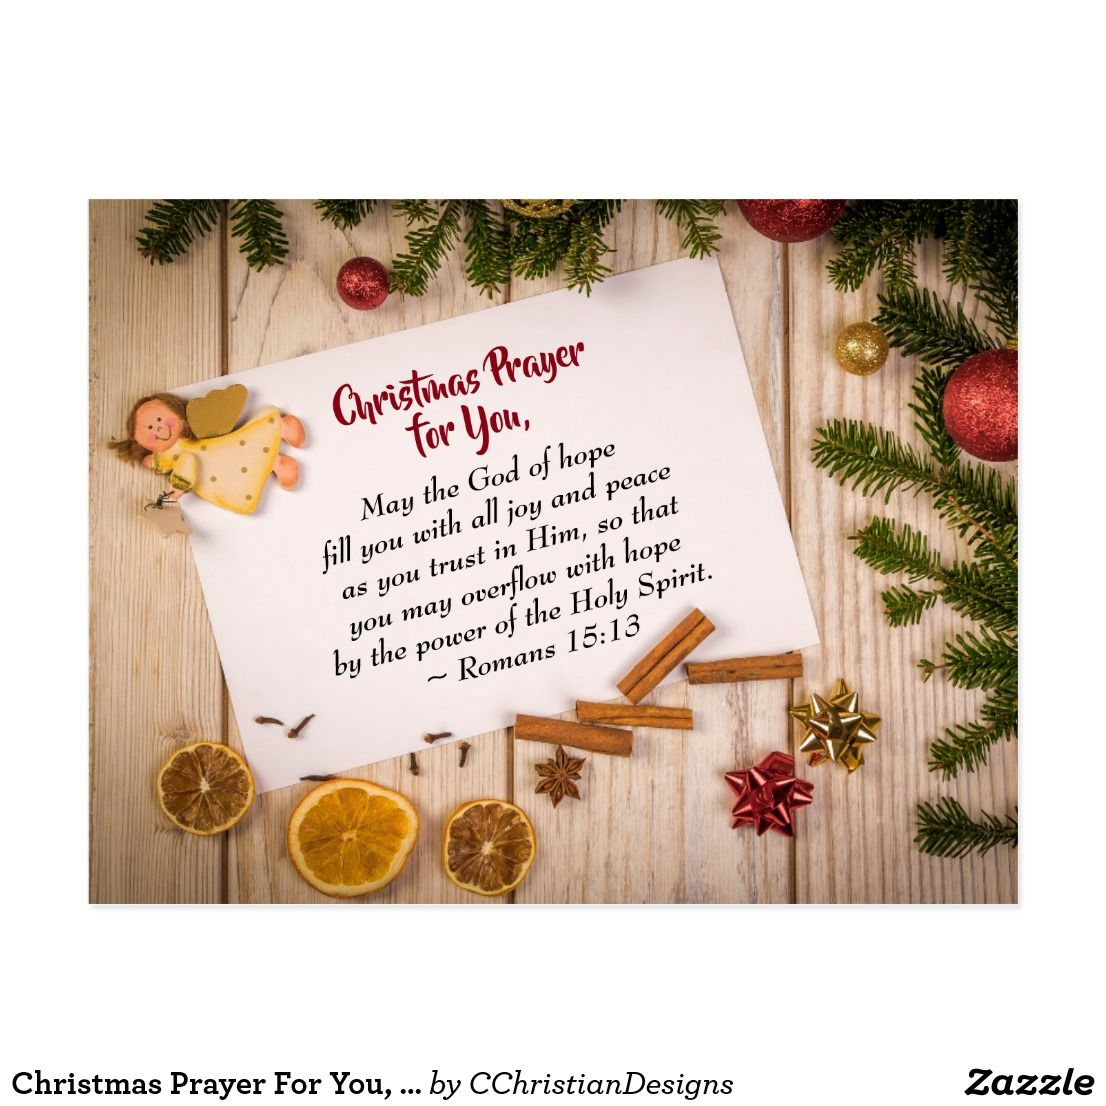 Christmas Prayer For You May The God Of Hope Postcard Zazzle Com Merry Christmas Wishes Quotes Merry Christmas Images Merry Christmas Wishes